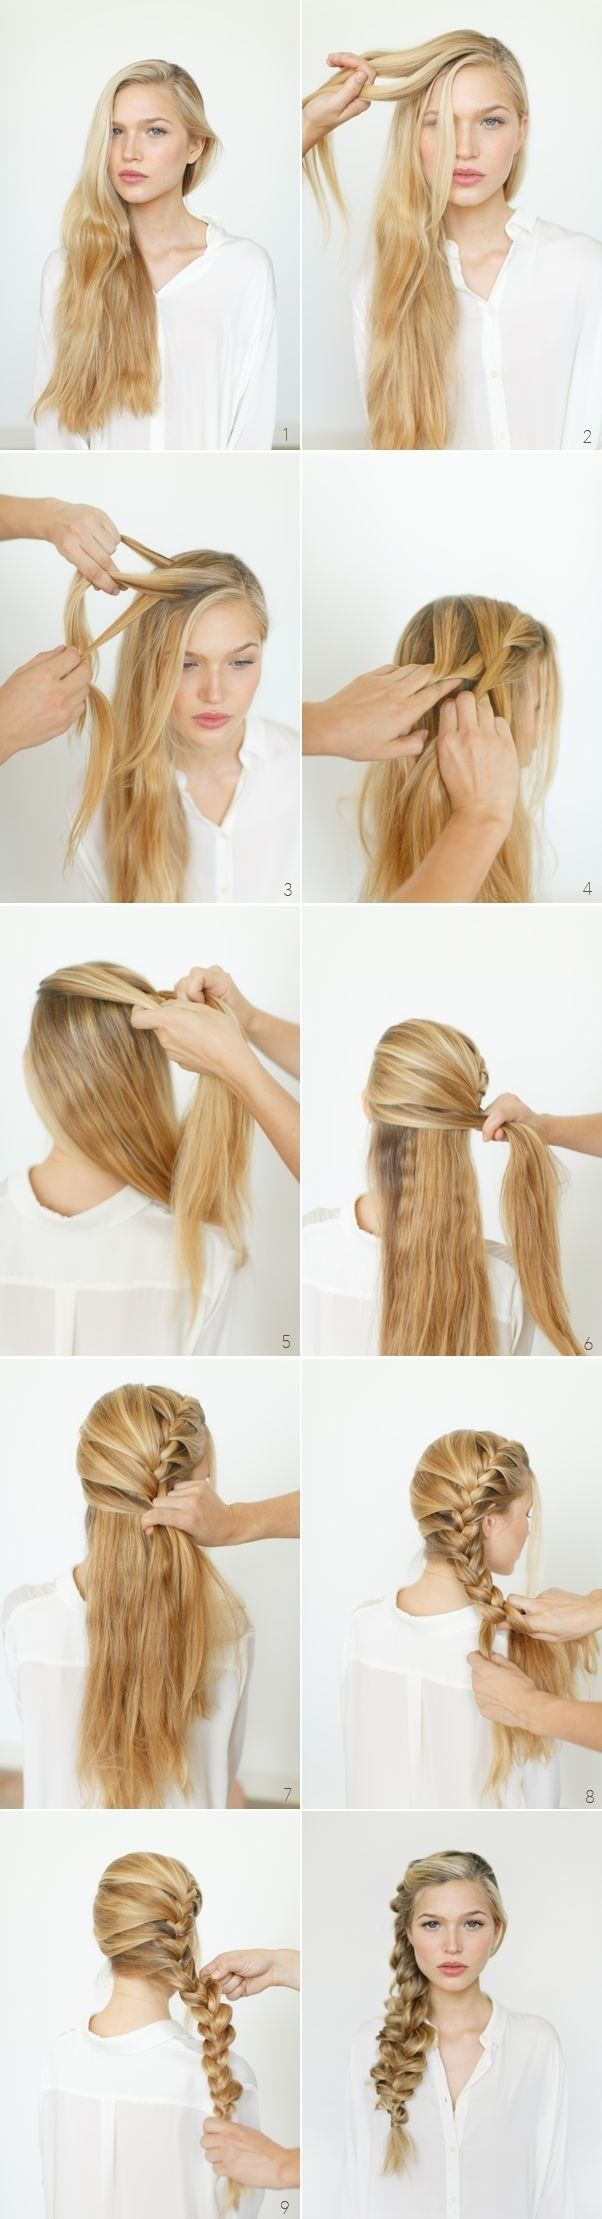 Best 25+ Long hairstyles for girls ideas on Pinterest | Hairstyles ...